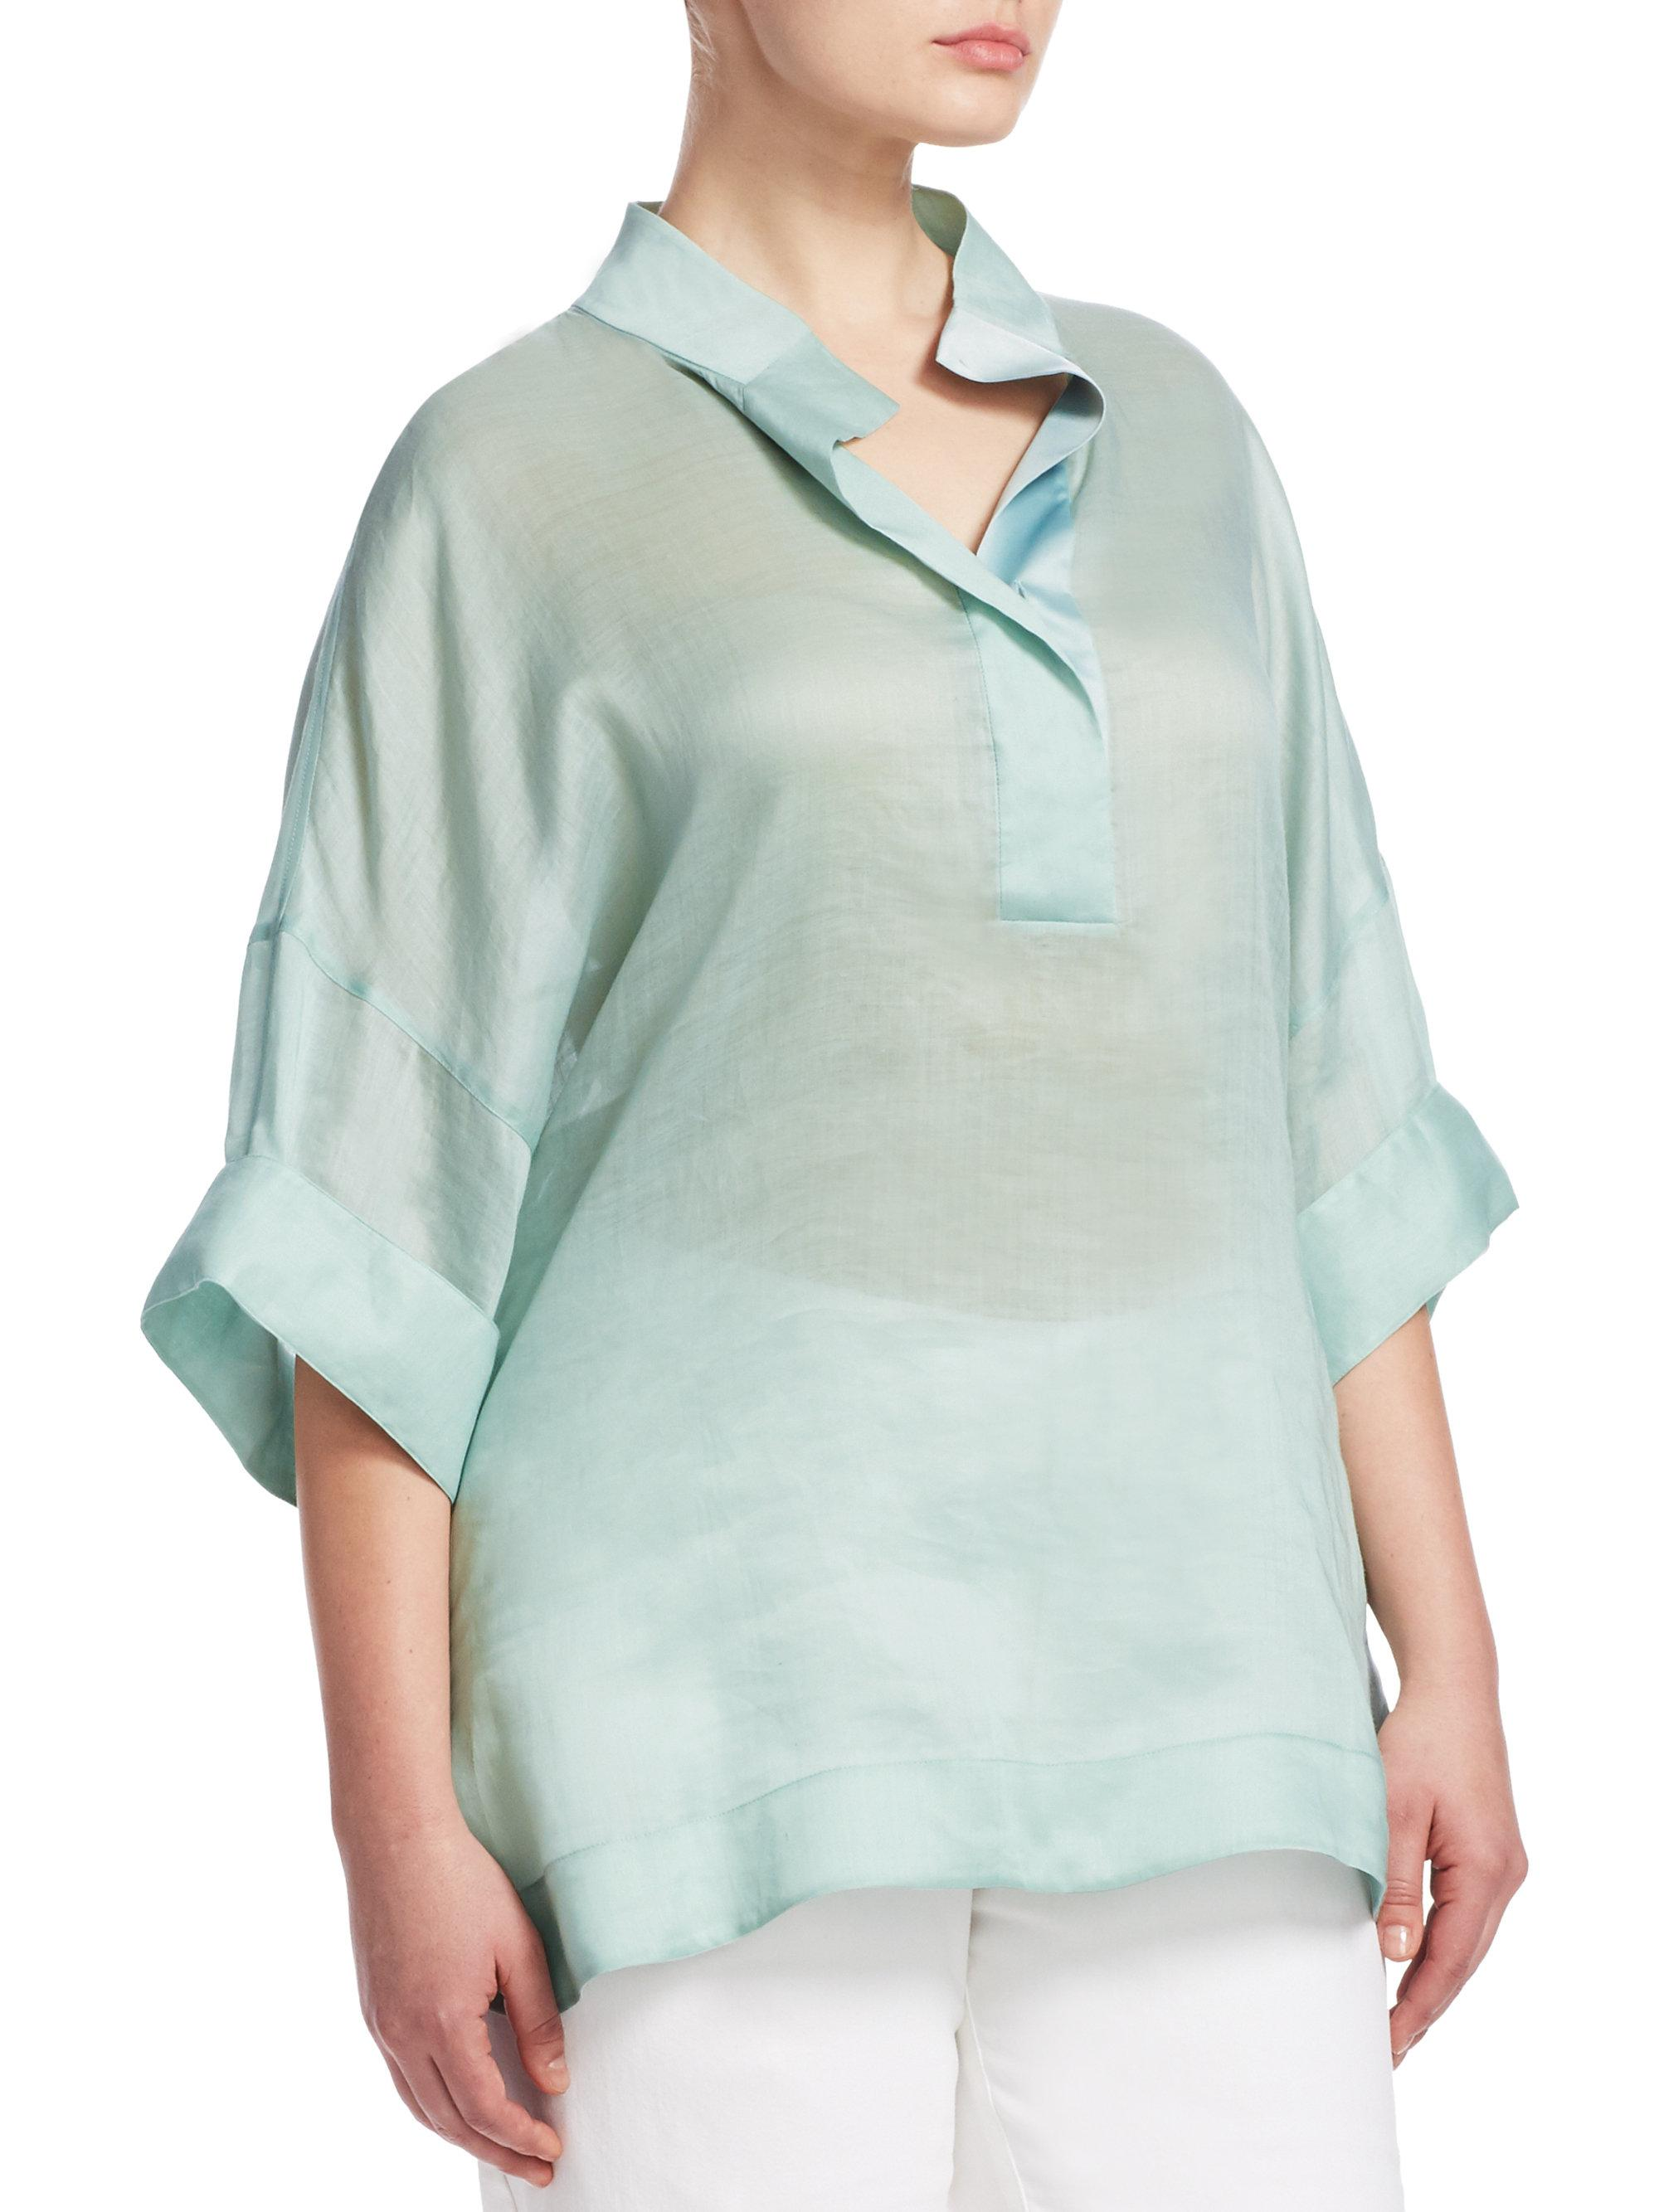 adff1458a62 Lafayette 148 New York Silvia Blouse in Blue - Lyst